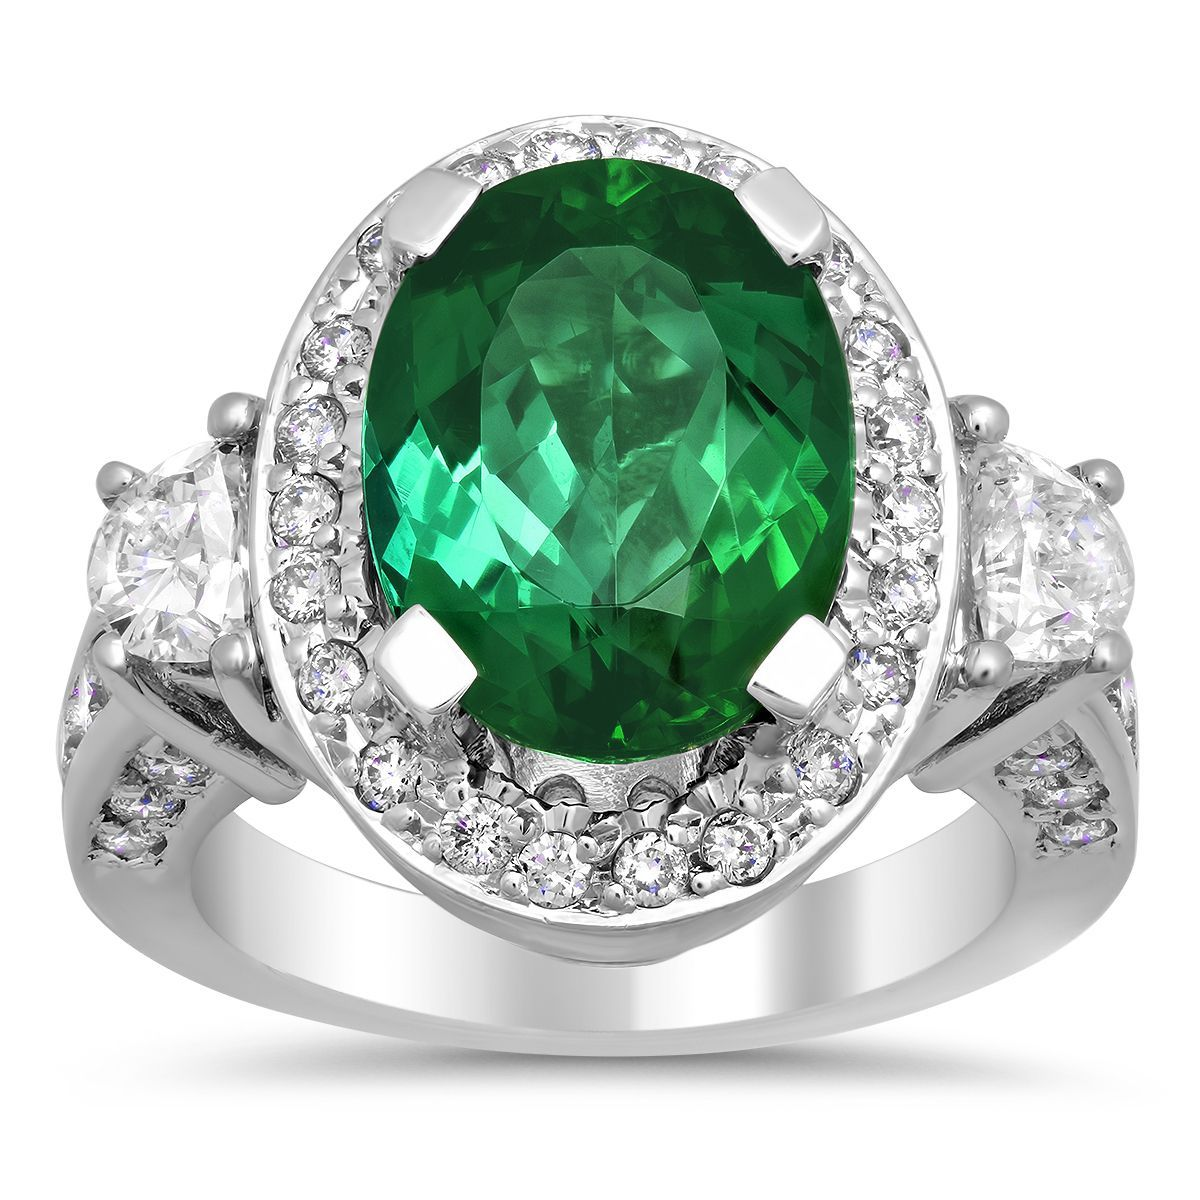 Artistry Collections 14k White Gold Tourmaline and 2ct TDW Diamond Ring